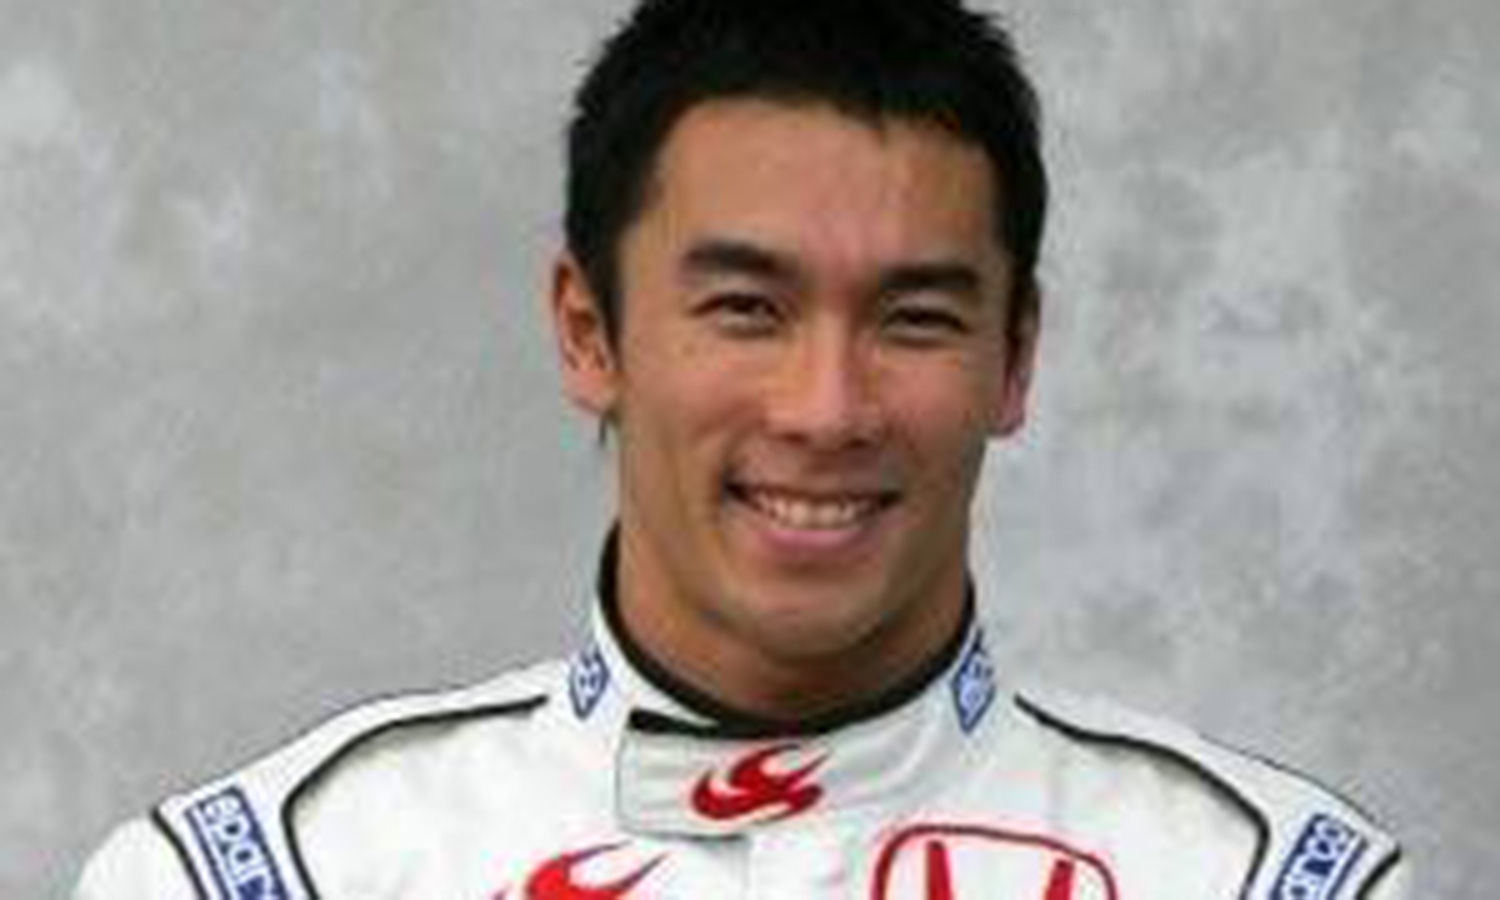 Takuma Sato is the first Japanese driver in history to win an IndyCar series race